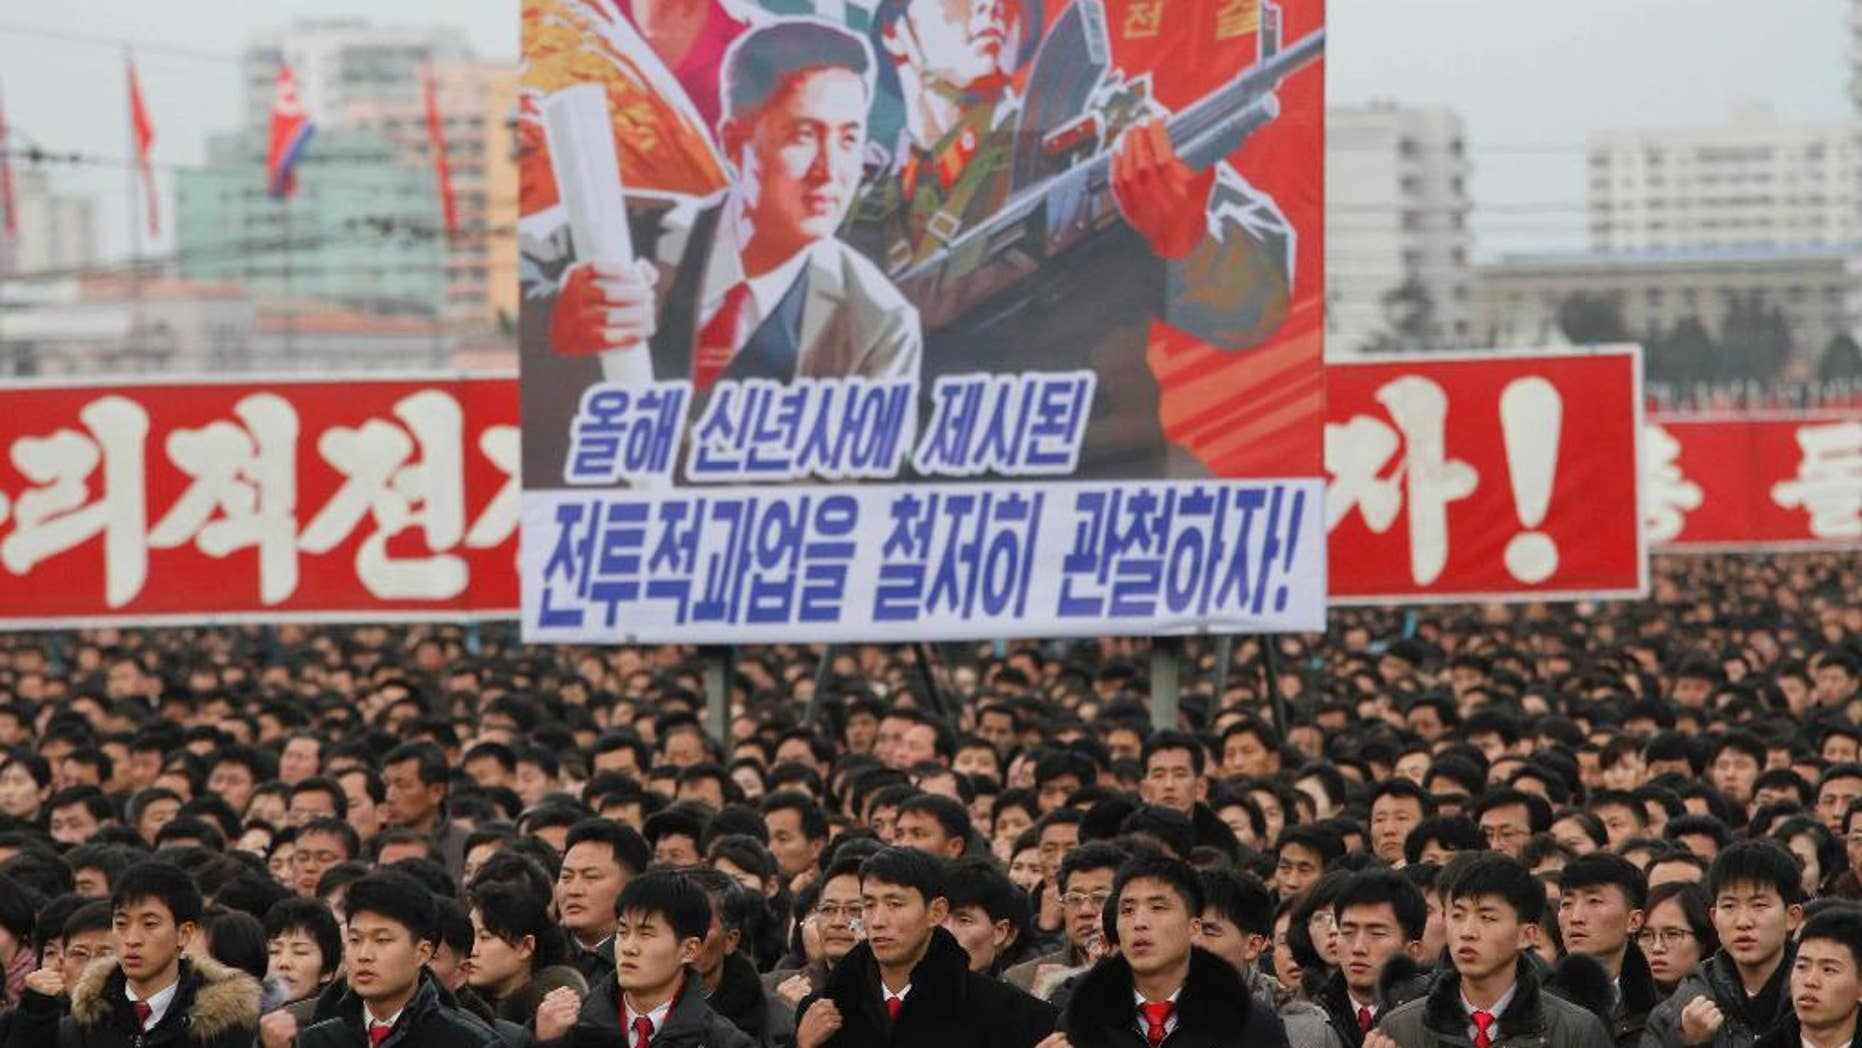 North Koreans gather during a mass rally to vow to carry through the tasks set forth by North Korean leader Kim Jong Un in his New Year's address, at Kim Il Sung Square in Pyongyang, North Korea Thursday, Jan. 5, 2017. (AP Photo/Jon Chol Jin)